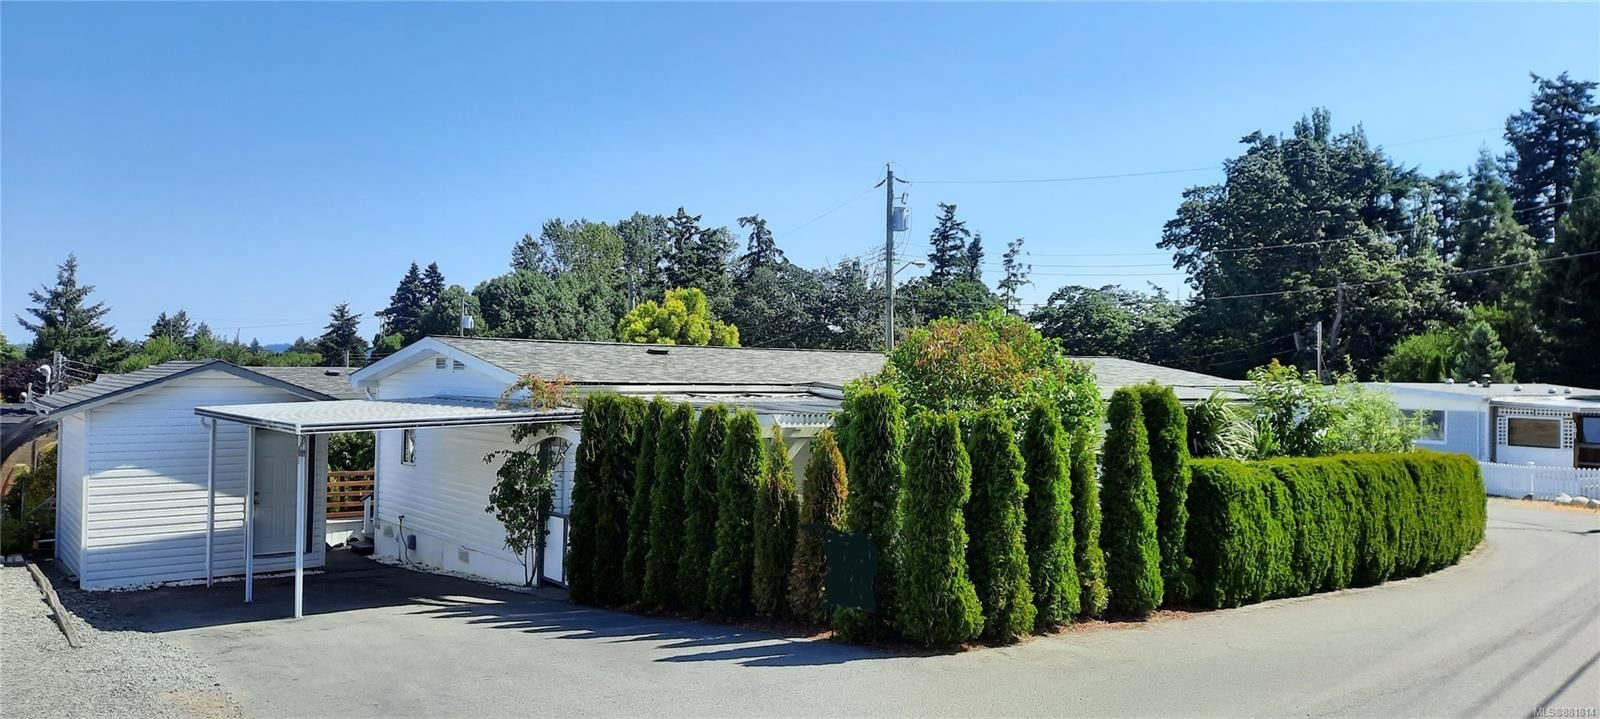 Main Photo: 102 17 Chief Robert Sam Lane in : VR Glentana Manufactured Home for sale (View Royal)  : MLS®# 881814